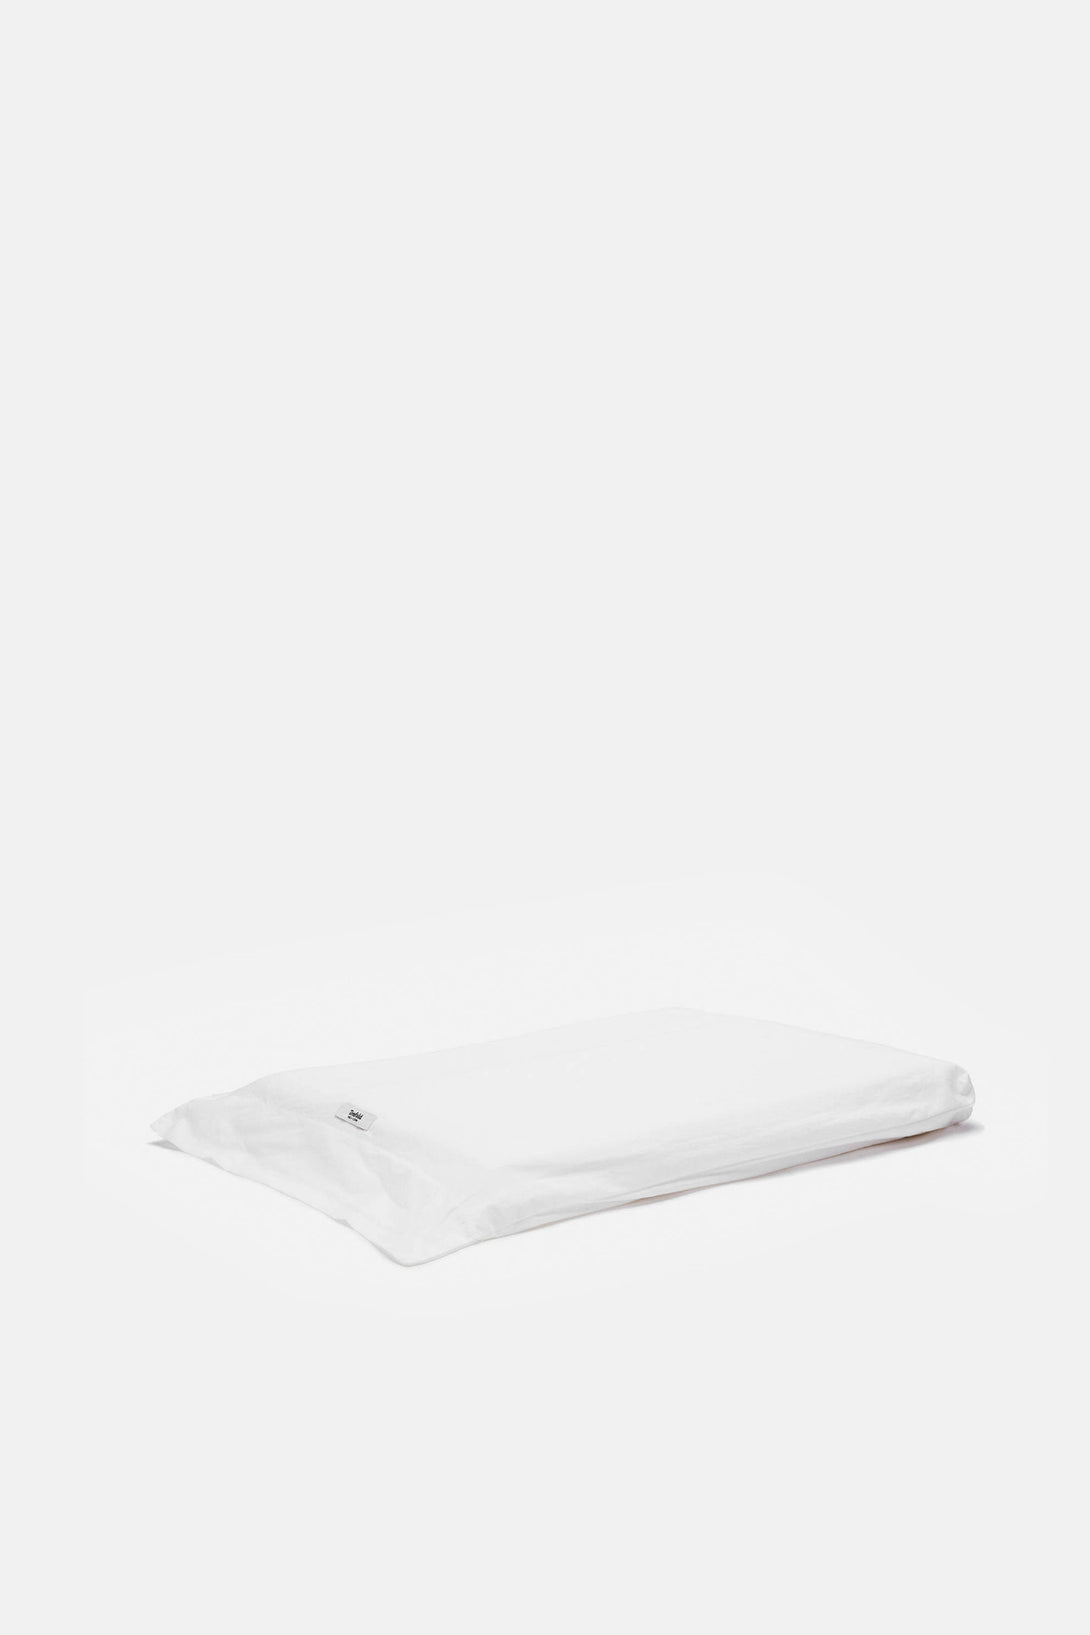 Washed Percale Cali King Fitted Sheet - White